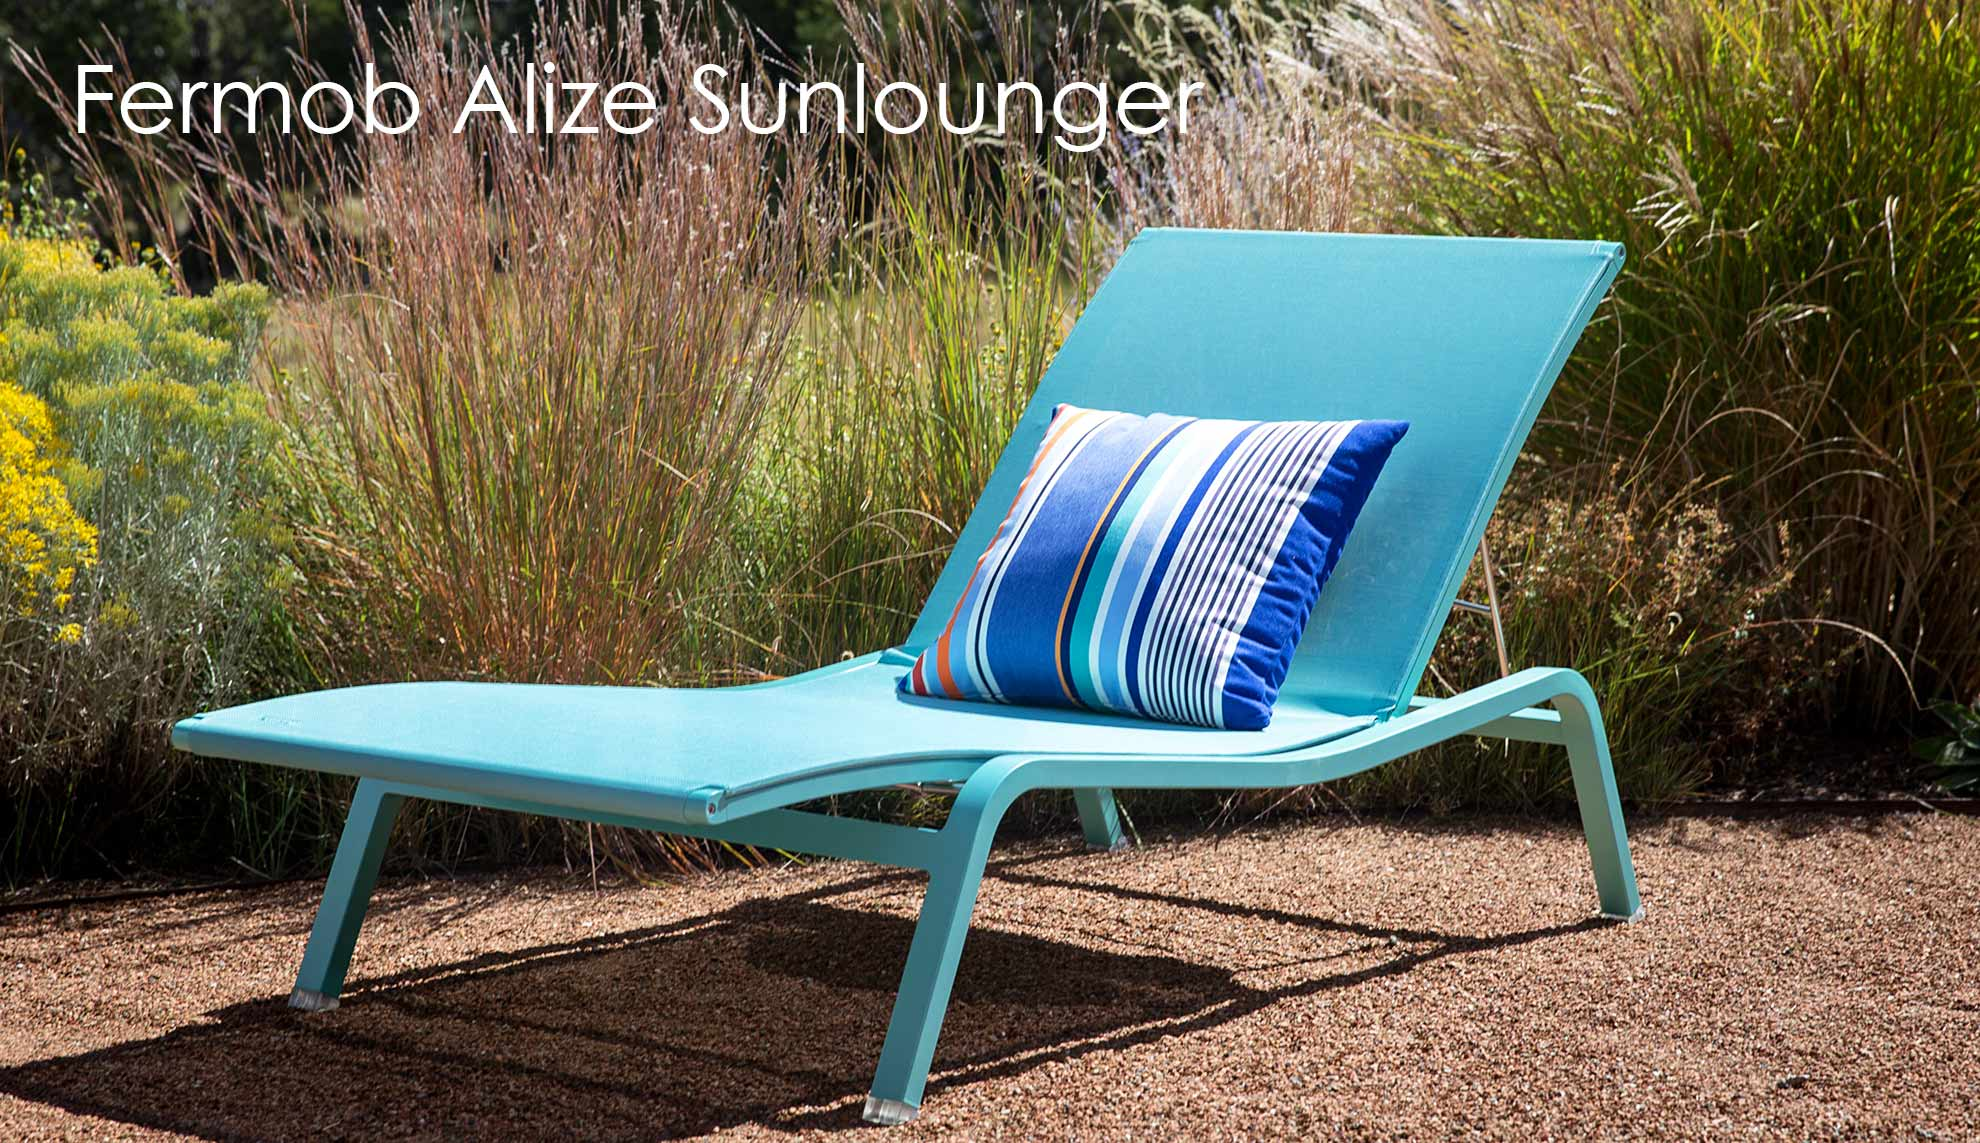 Fermob Alize Sunlounger pool chaise lounge